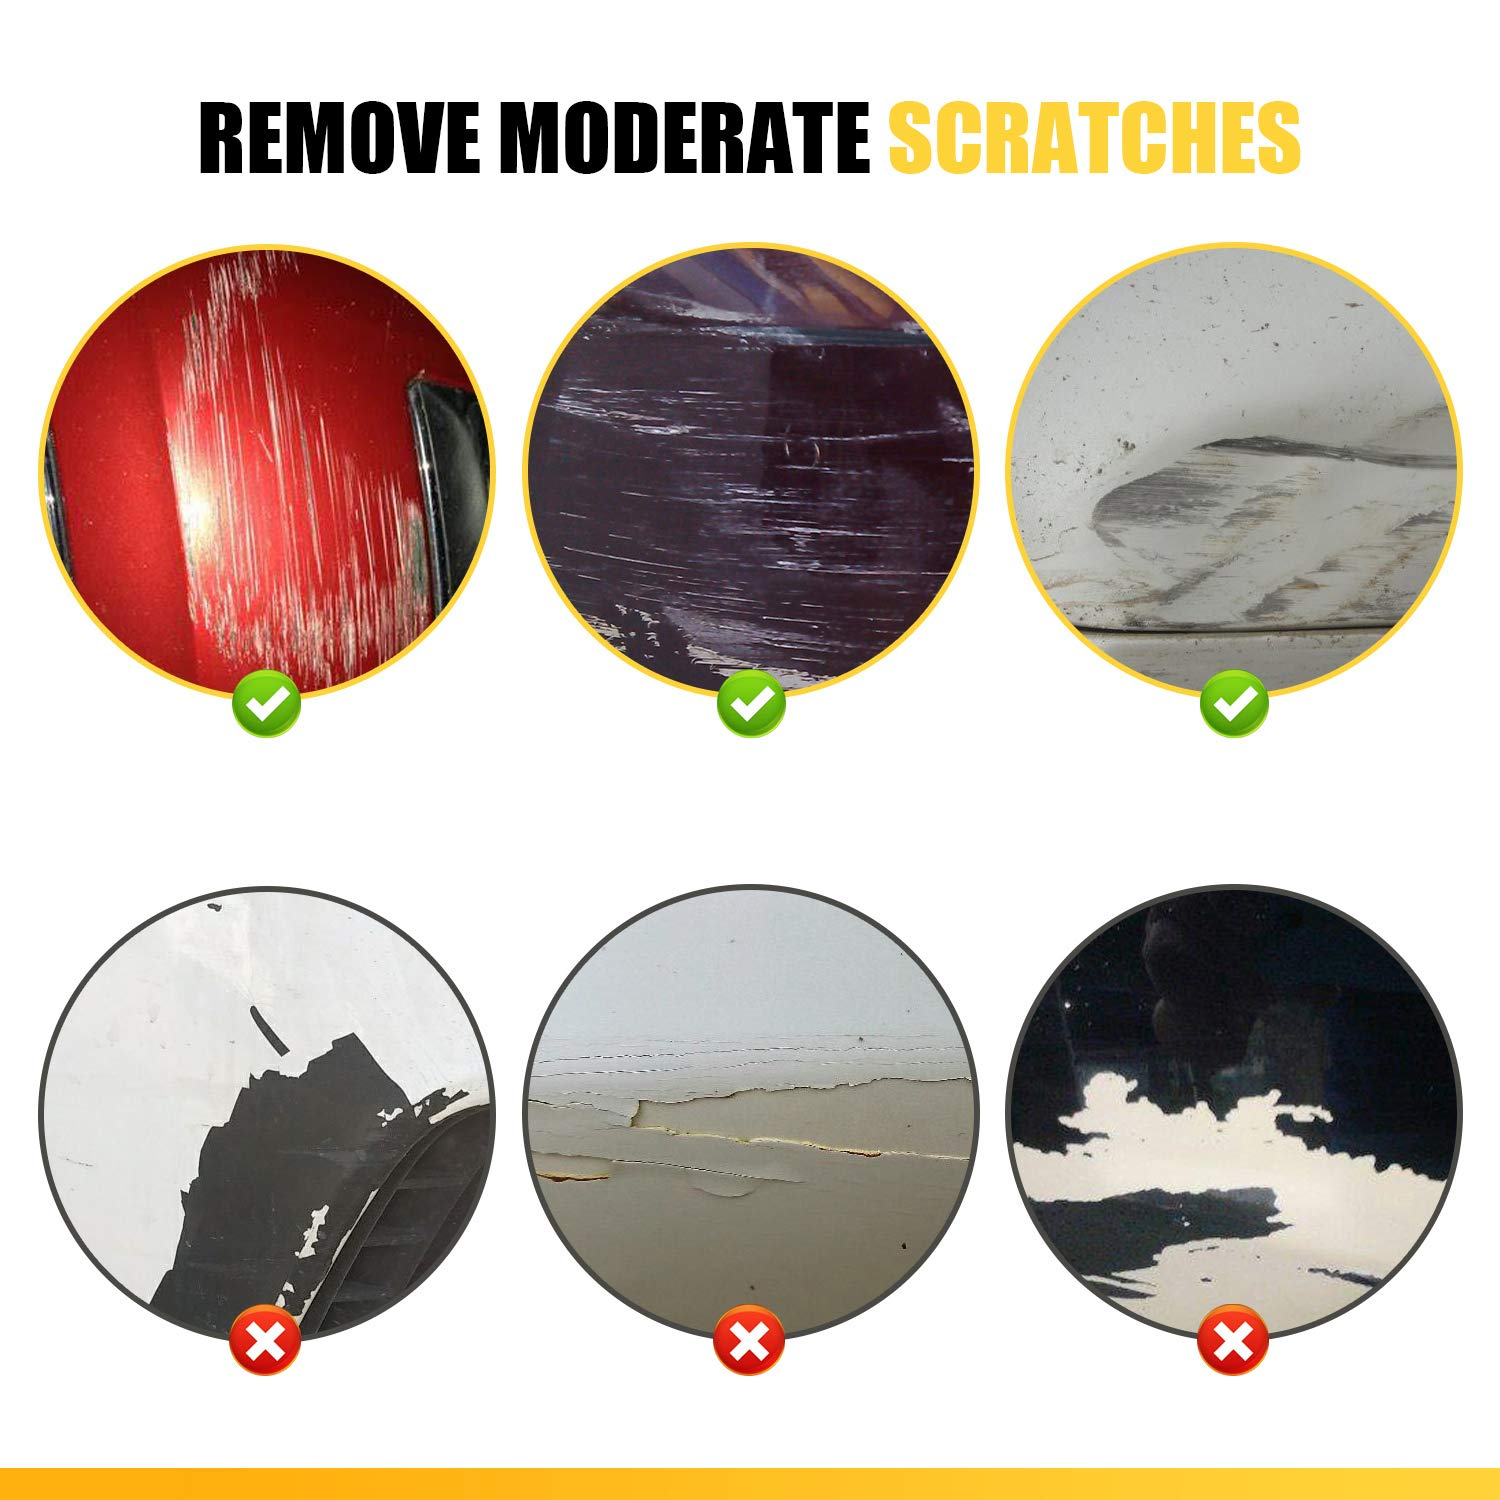 KUWAN Car Scratch Remover - Scratch Removal for Automobile - Paint Remover - Remove Scratches- Scratching Glass Stain Removal /Polish - Restore Blemishes to Repair Vehicle Surface by KUWAN (Image #5)